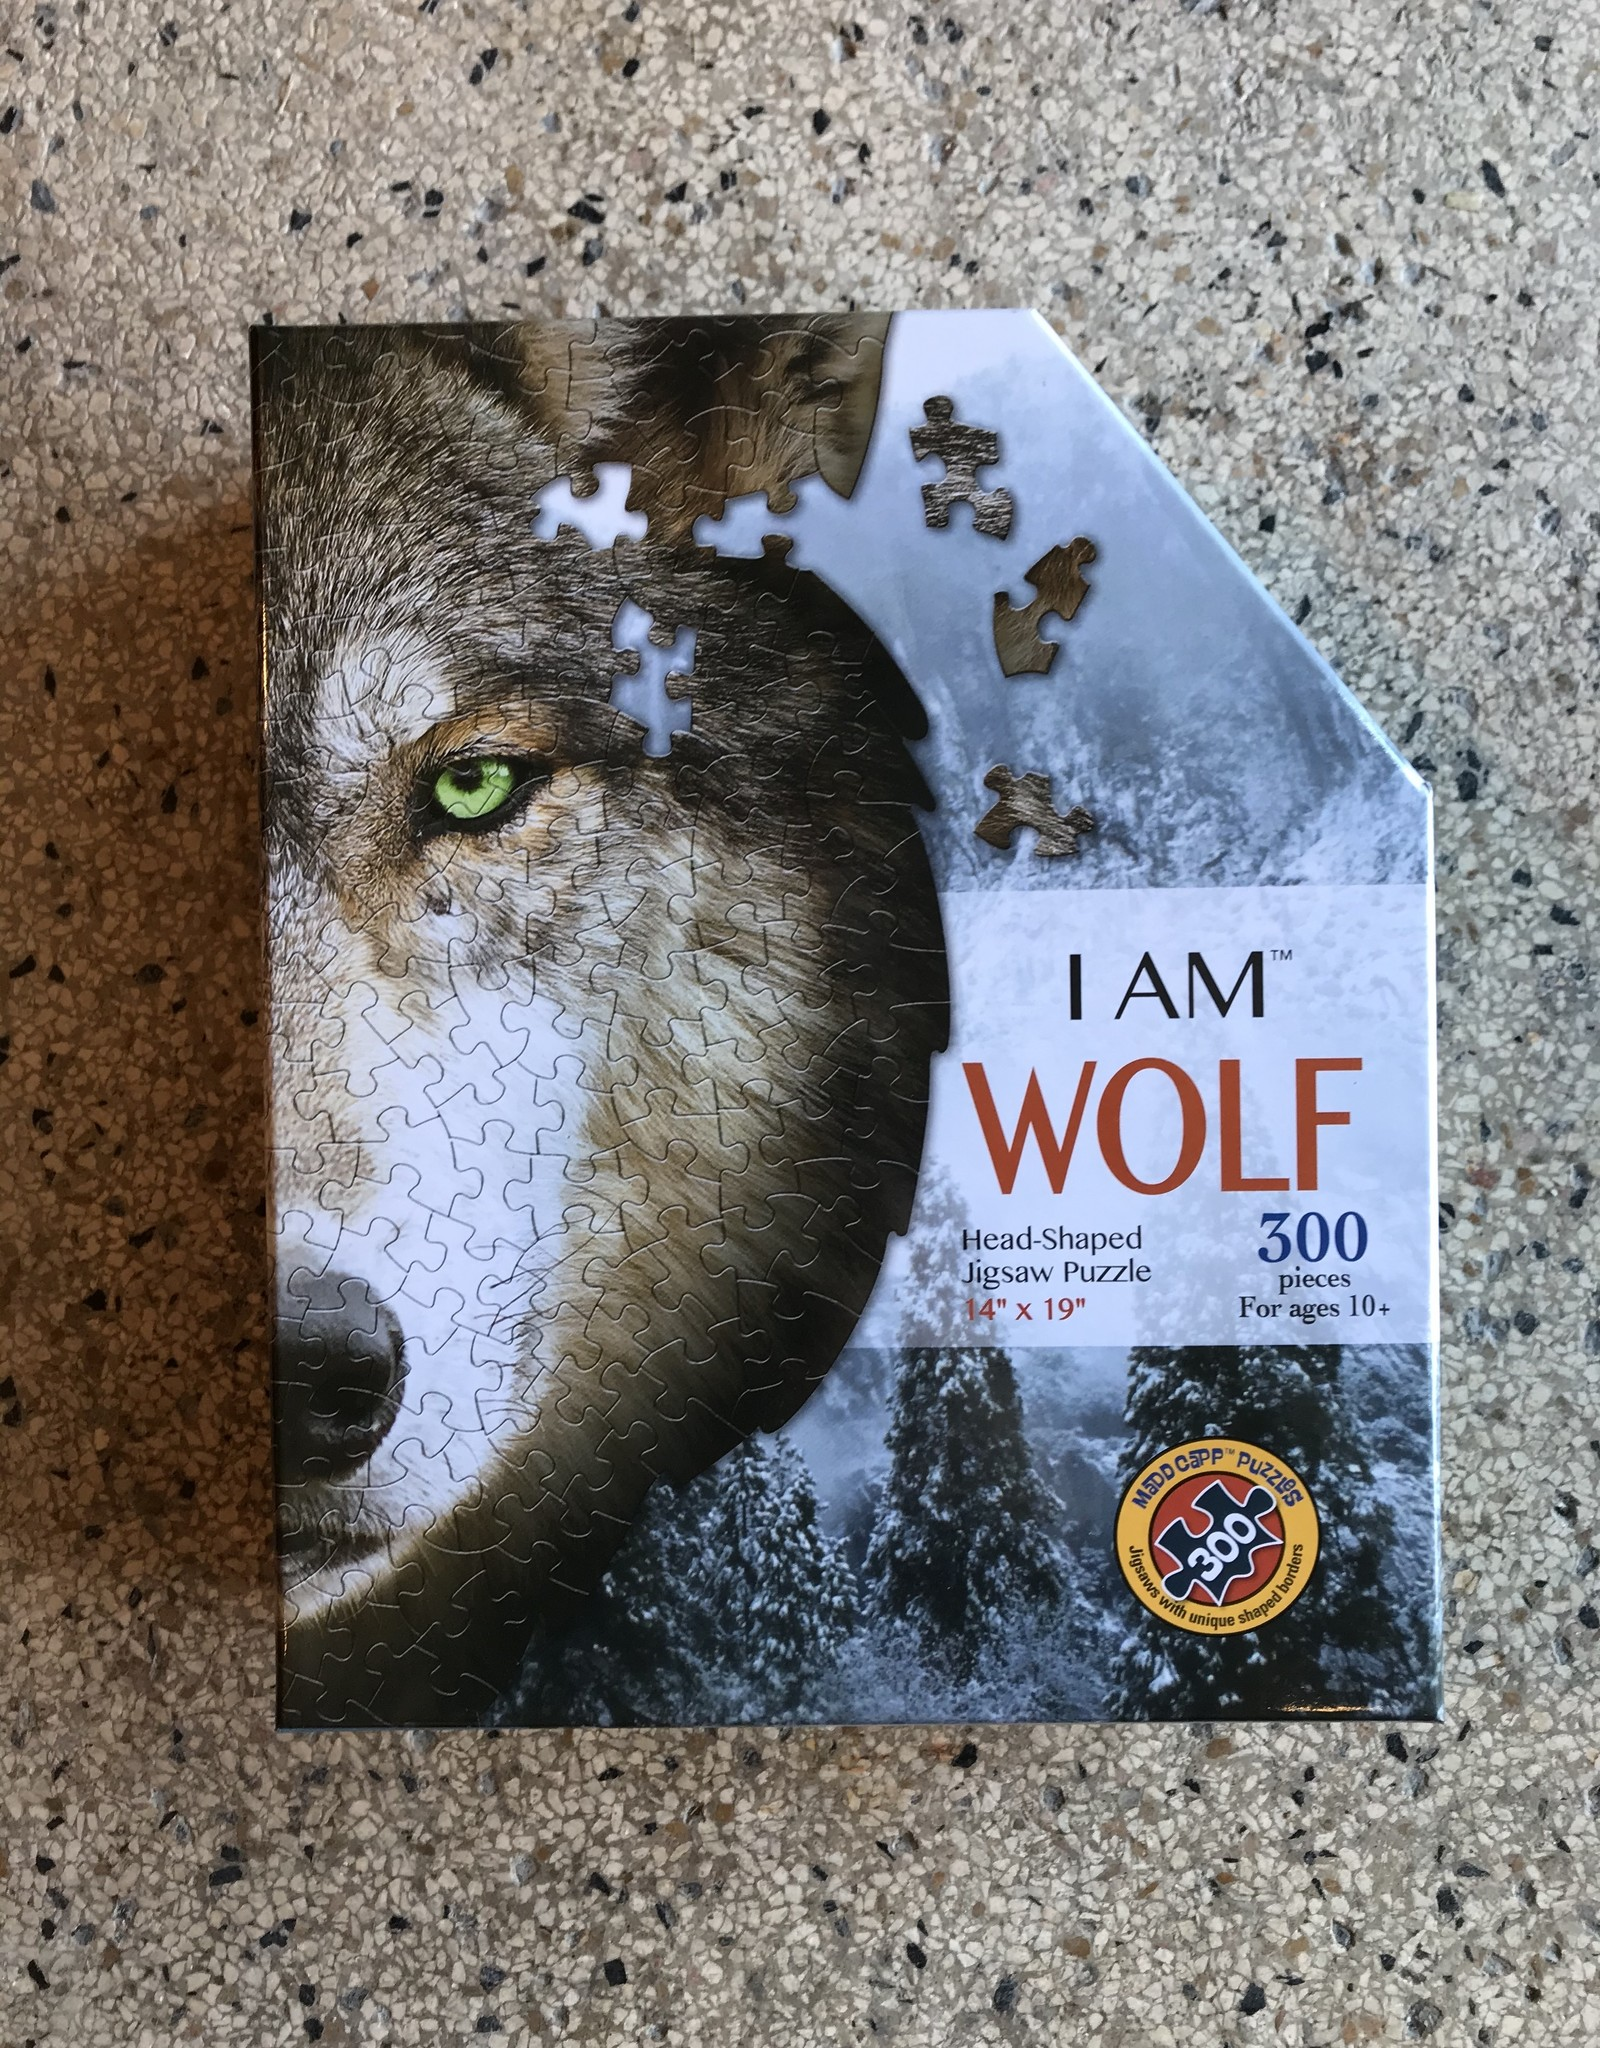 madd capp puzzles I am Wol Puzzle - 300 pieces